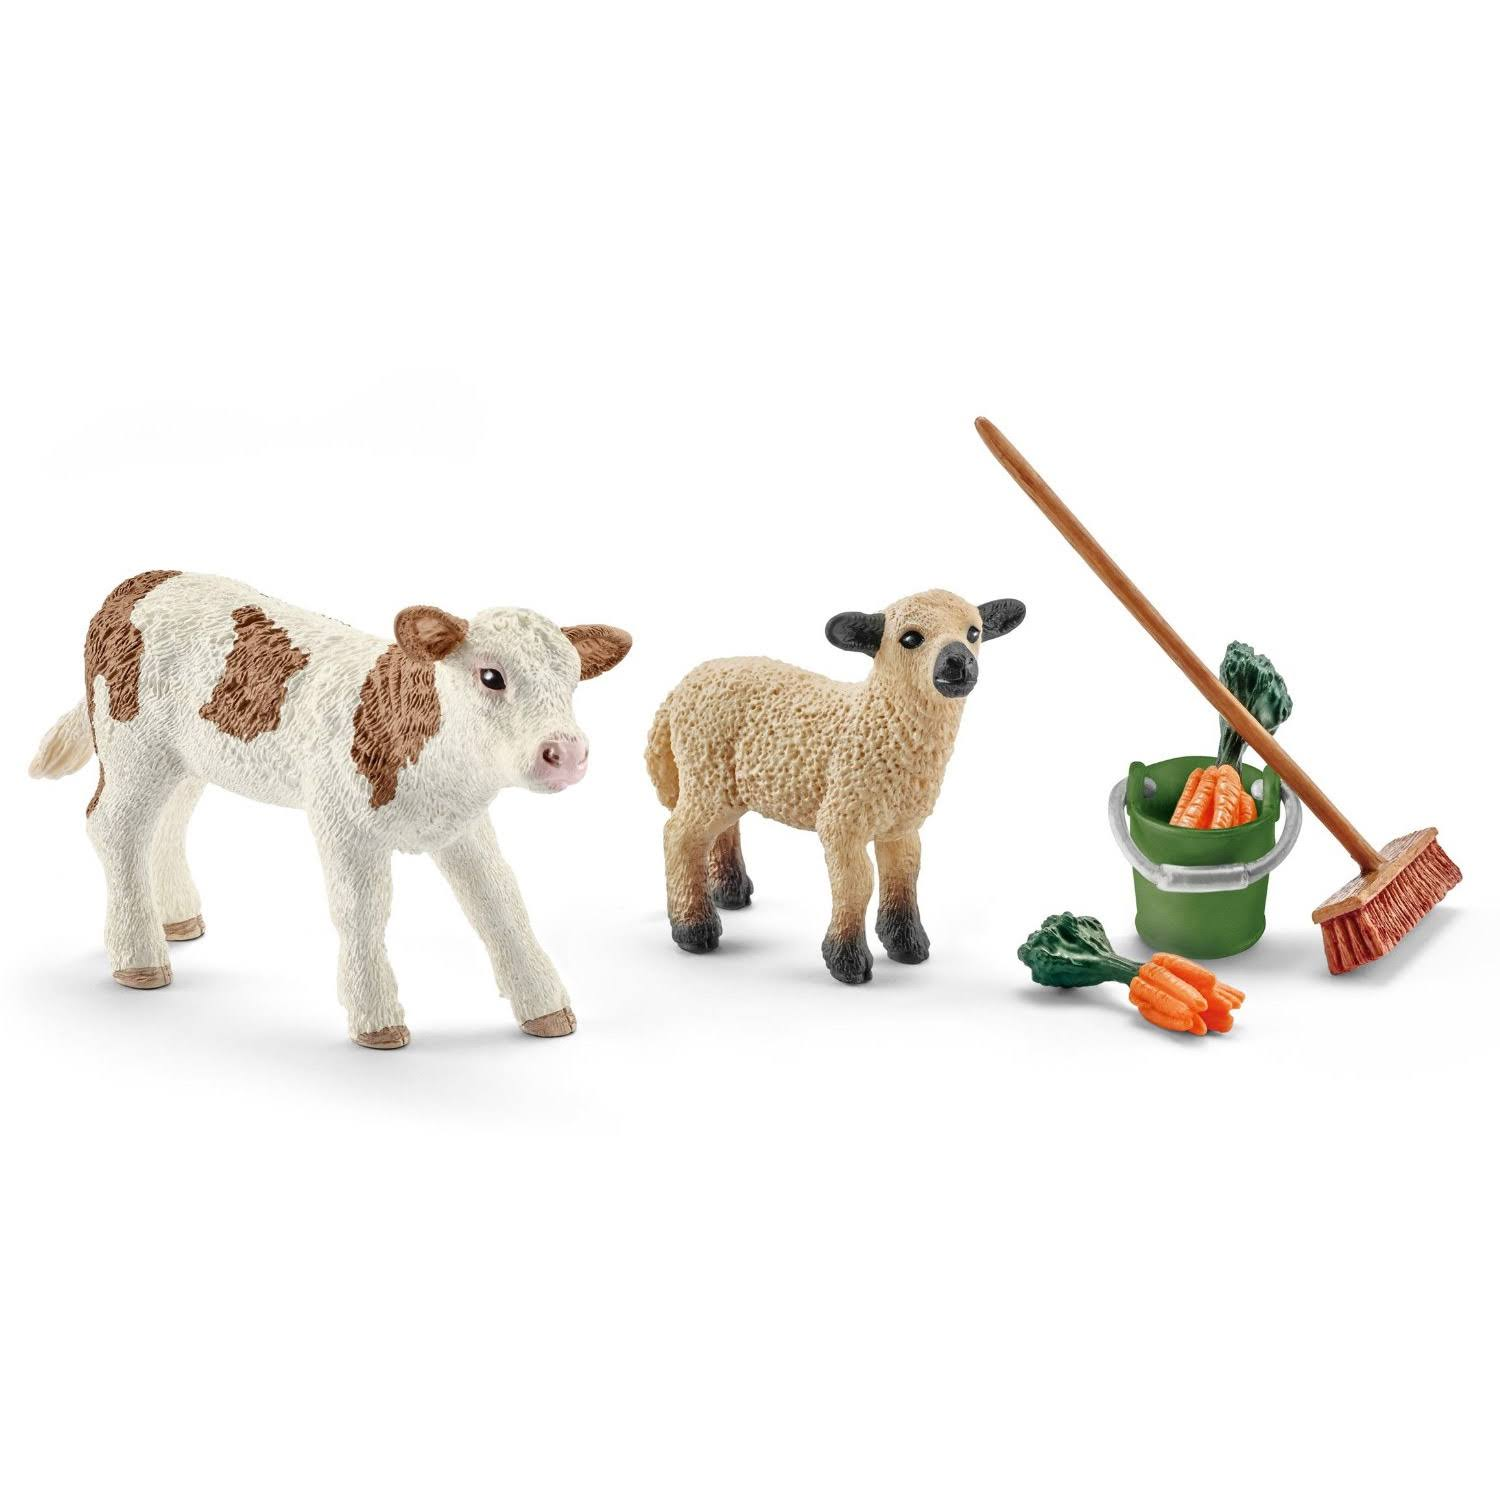 Schleich Stable Cleaning Kit with Calf and Lamb